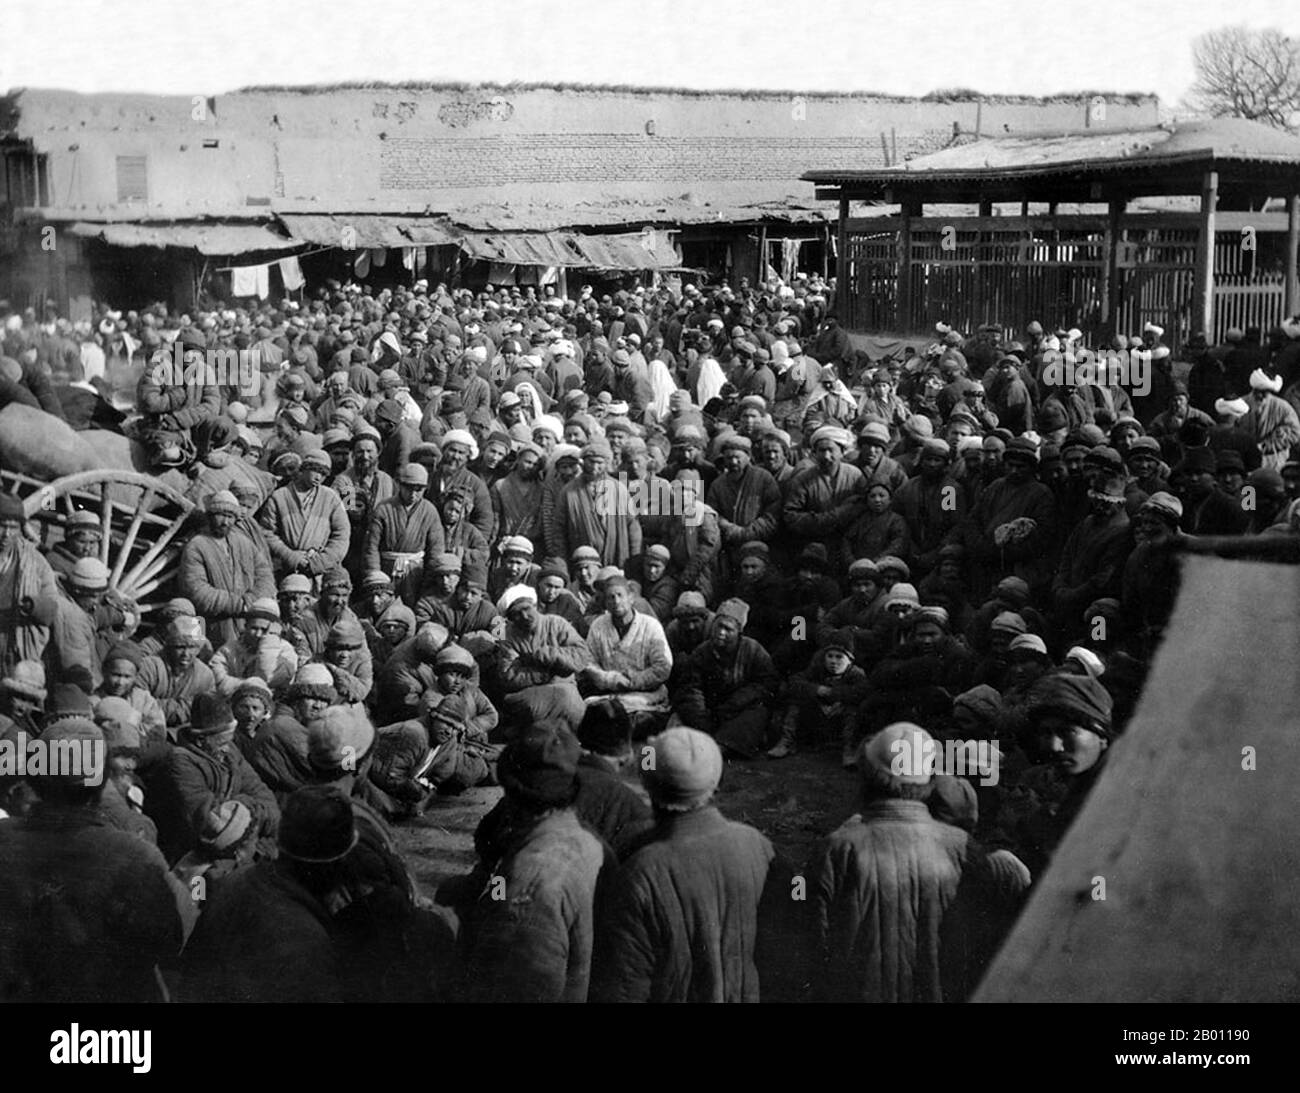 China: A crowd listening to a storyteller, Kashgar bazaar, Xinjiang. Photograph by Dutch botanist Frank Nicholas Meyer (1875-1918), 1911.  The earliest mention of Kashgar occurs when a Chinese Han Dynasty (206 BCE – 220 CE) envoy traveled the Northern Silk Road to explore lands to the west. Another early mention of Kashgar is during the Former Han (also known as the Western Han Dynasty), when in 76 BCE the Chinese conquered the Xiongnu, Yutian (Khotan), Sulei (Kashgar), and a group of states in the Tarim basin almost up to the foot of the Tian Shan mountains. Stock Photo